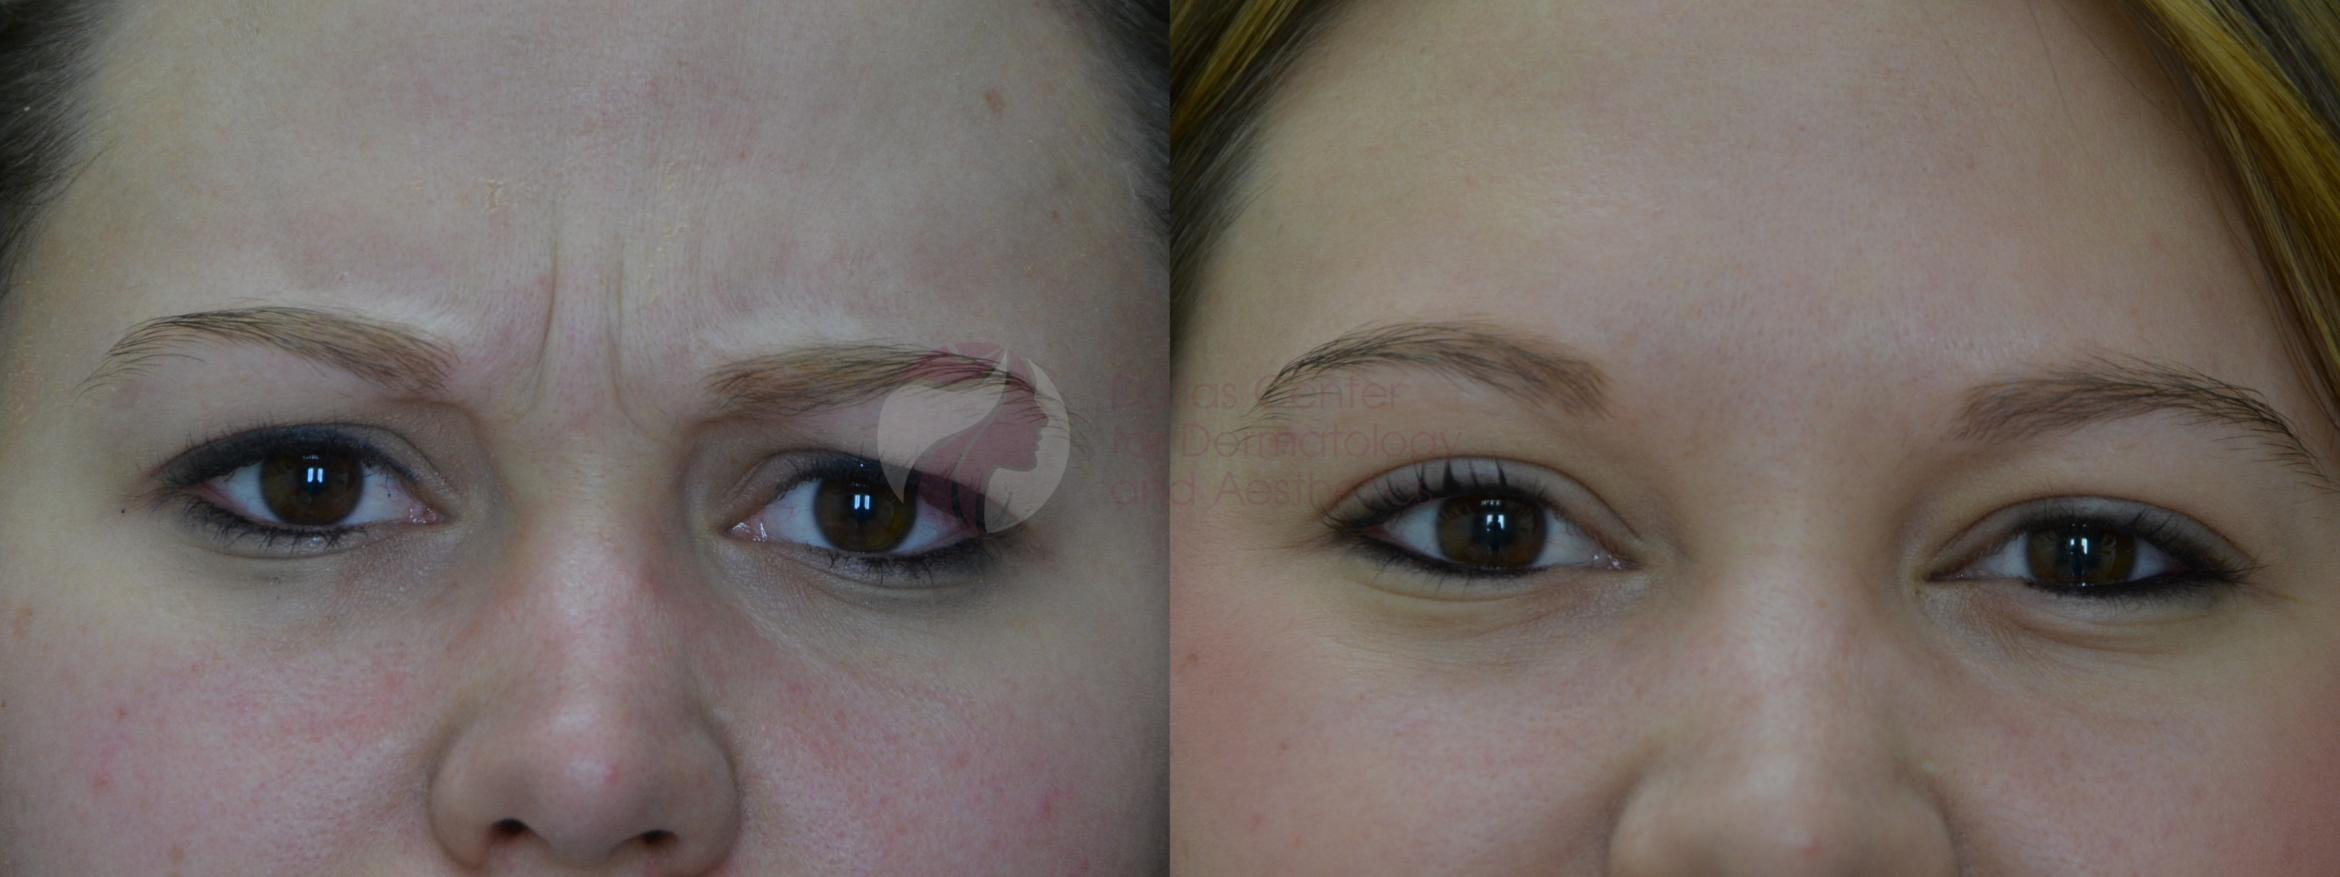 BOTOX® Cosmetic & Dysport® Case 39 Before & After View #1 | Dallas, TX | Dallas Center for Dermatology and Aesthetics